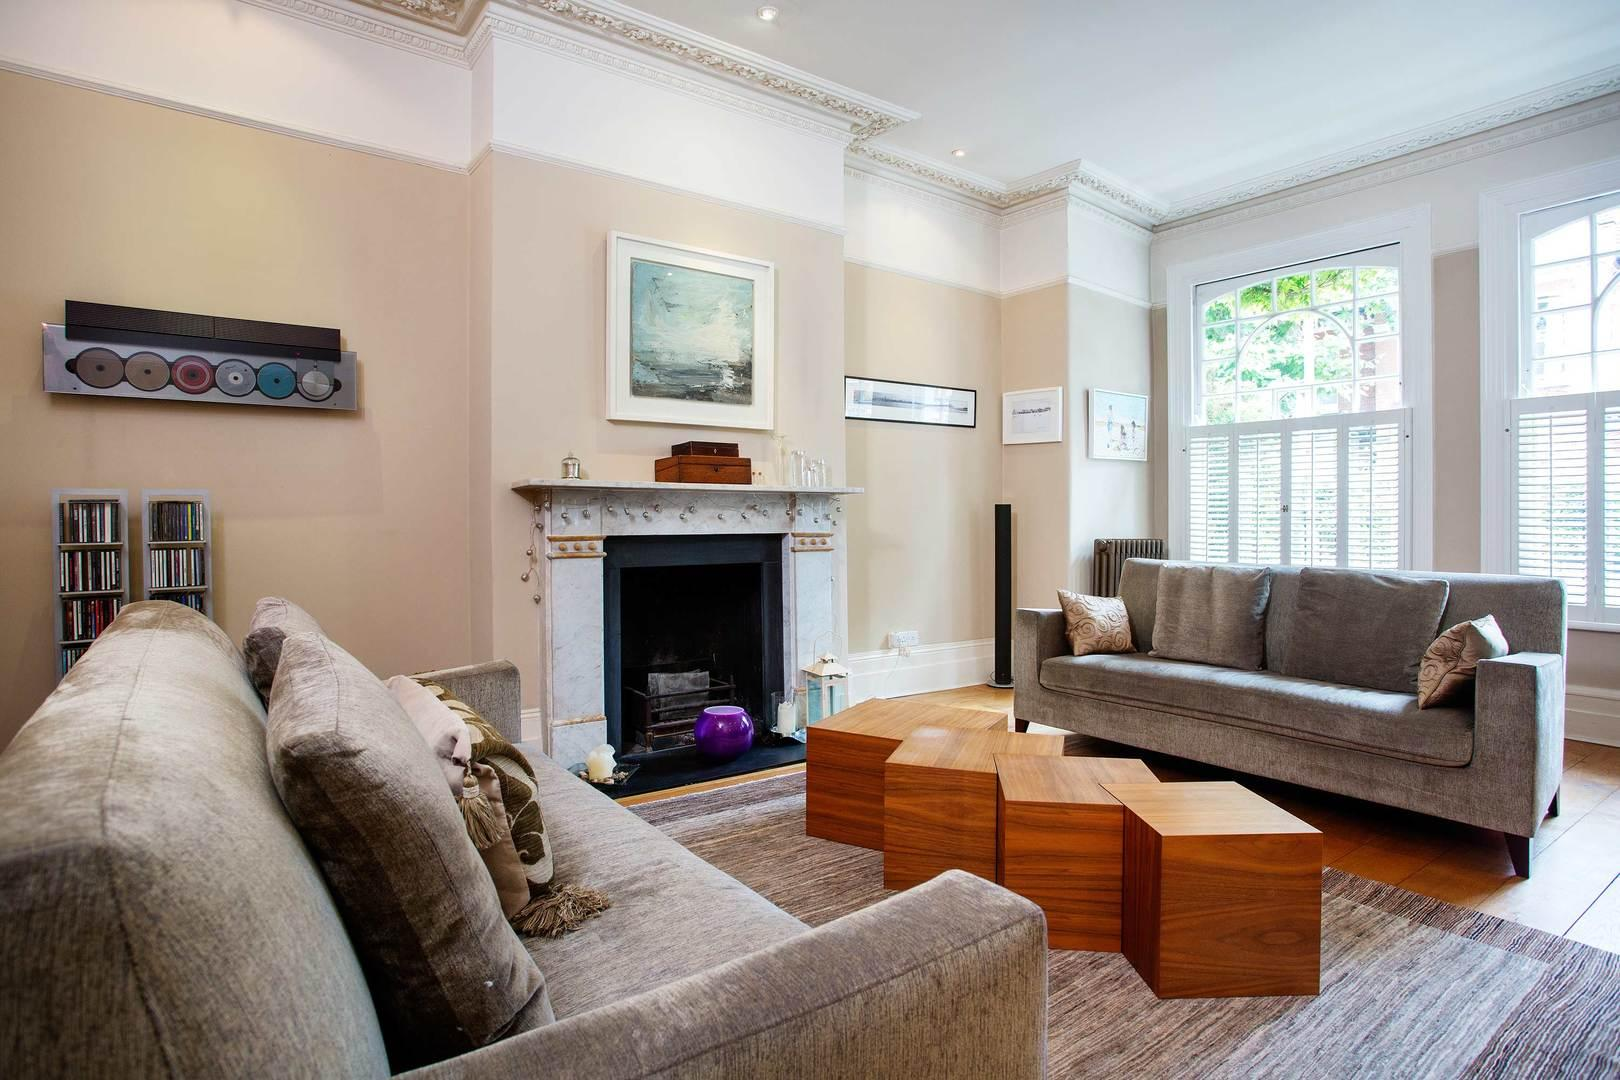 Property Image 1 - Attractive Tranquil Tooting Home with Wonderful Garden